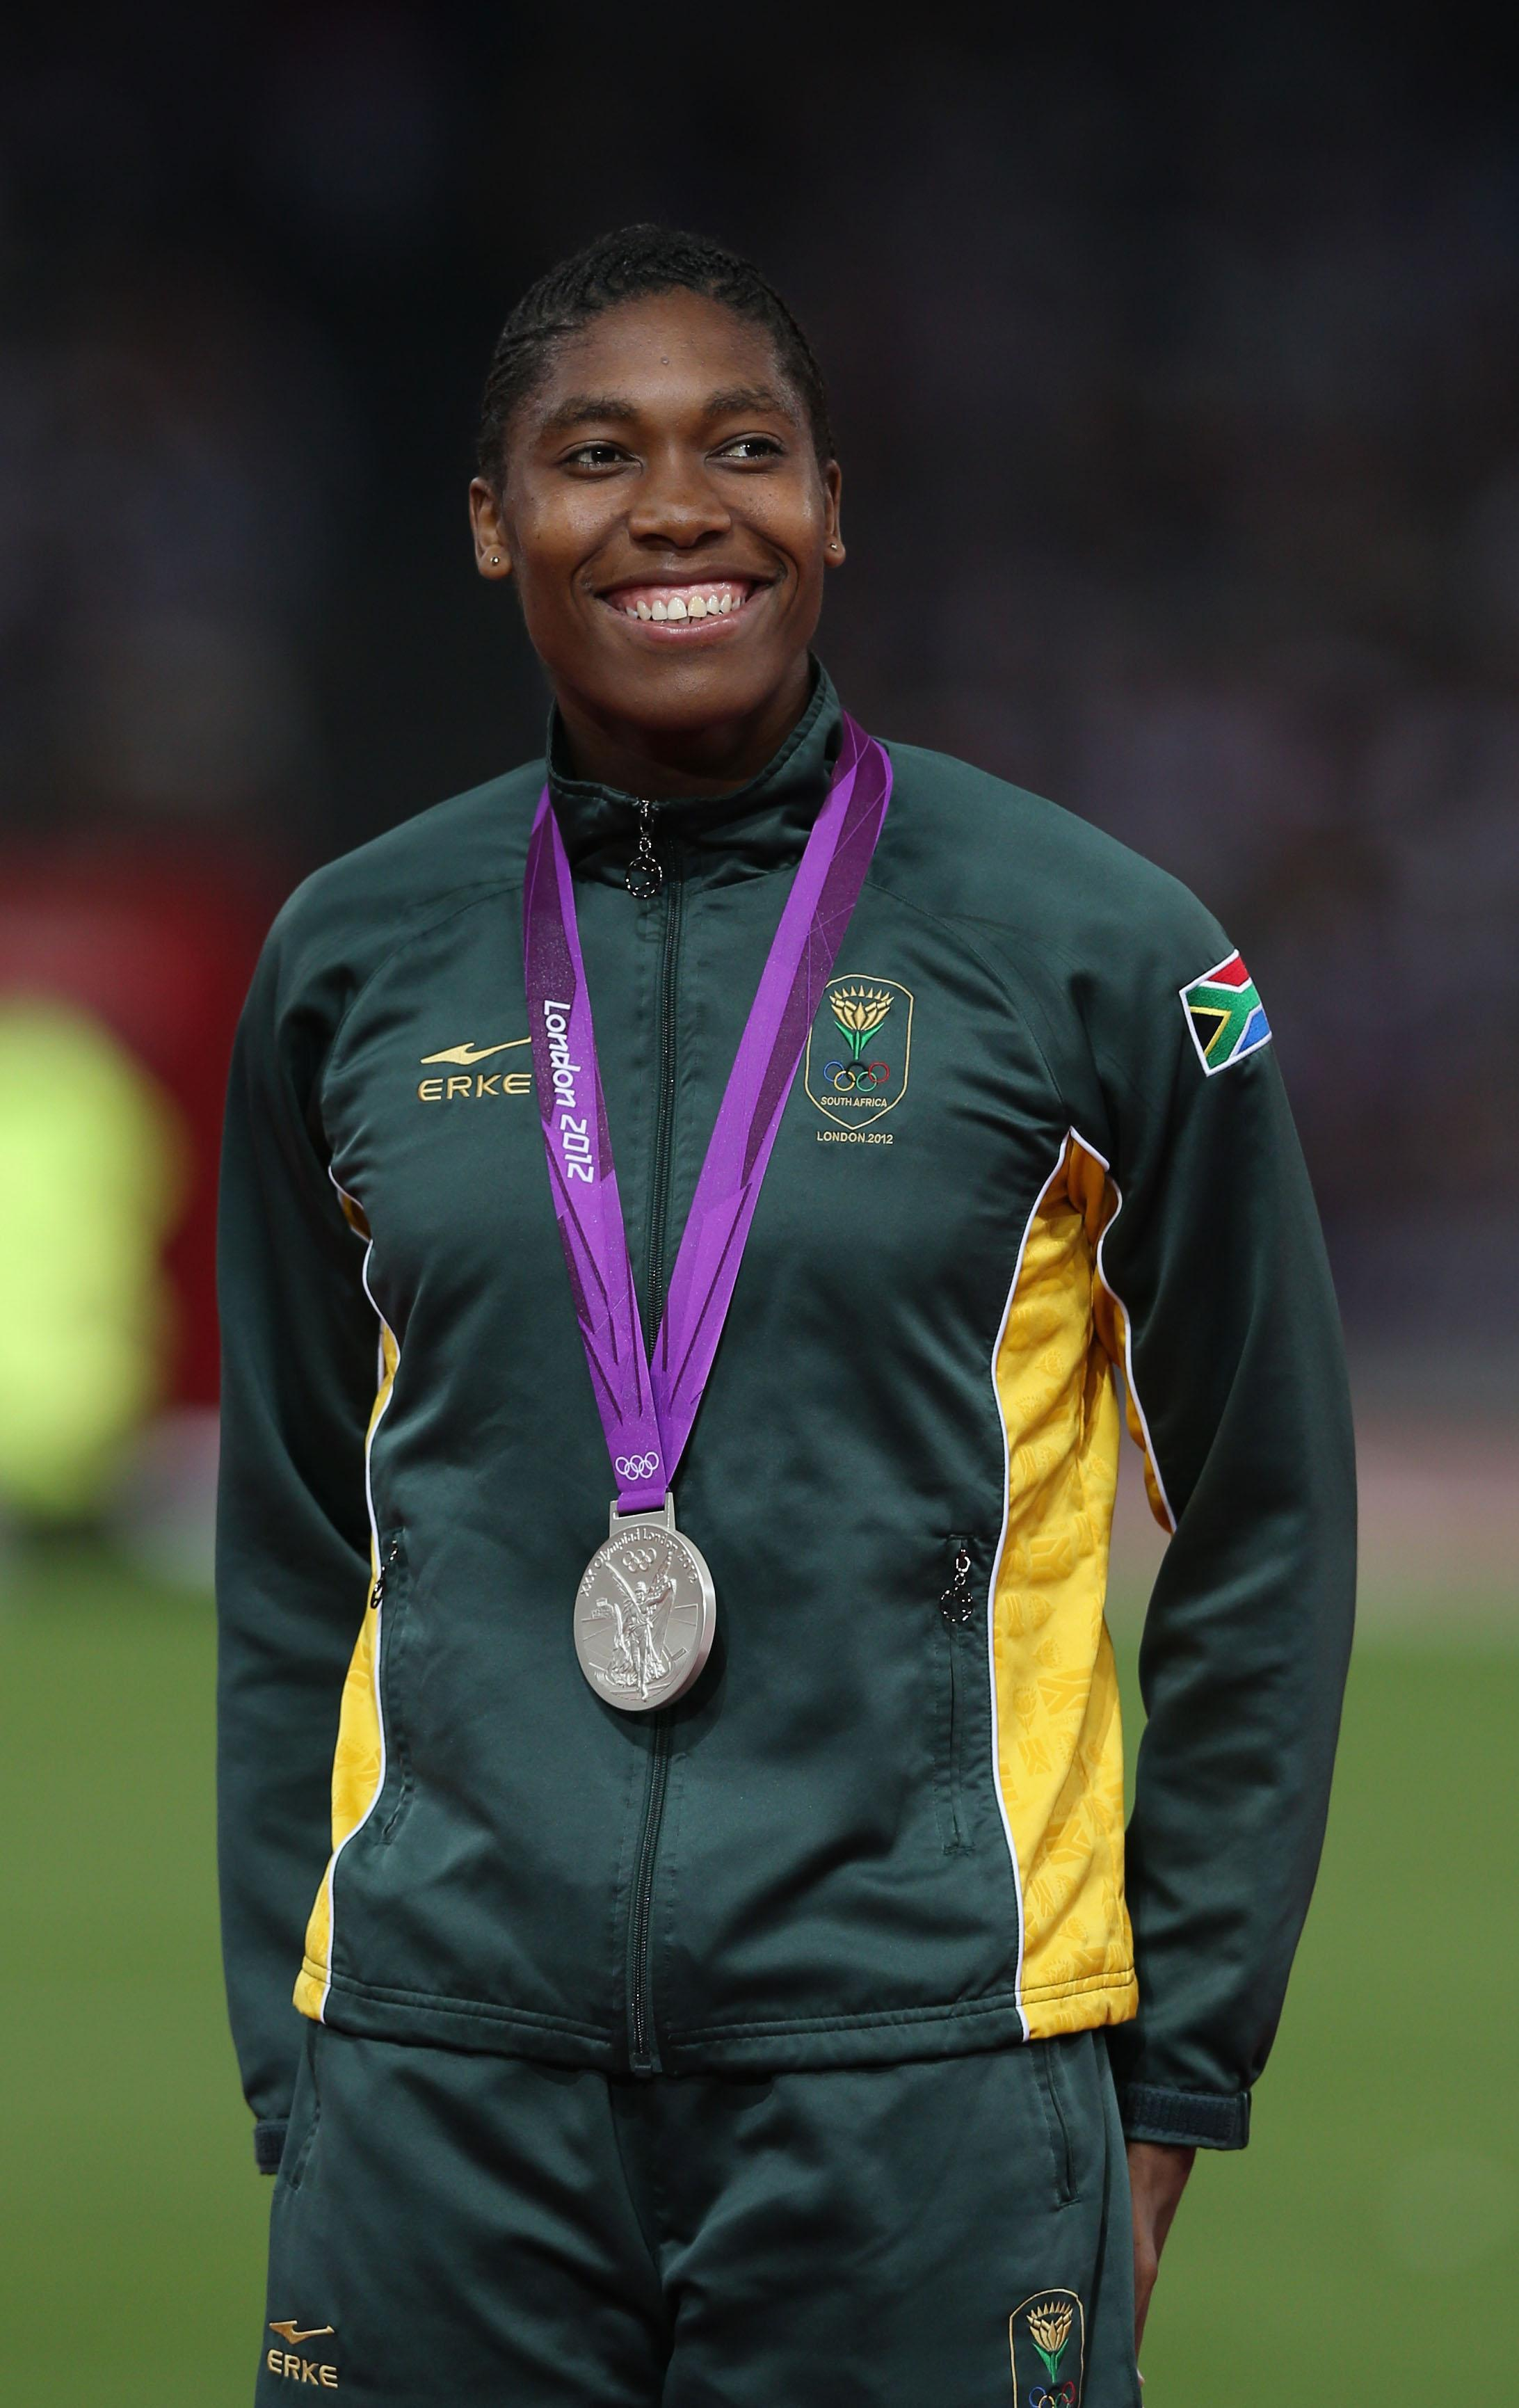 The new rules on testosterone levels only cover the distances Caster Semenya competes in